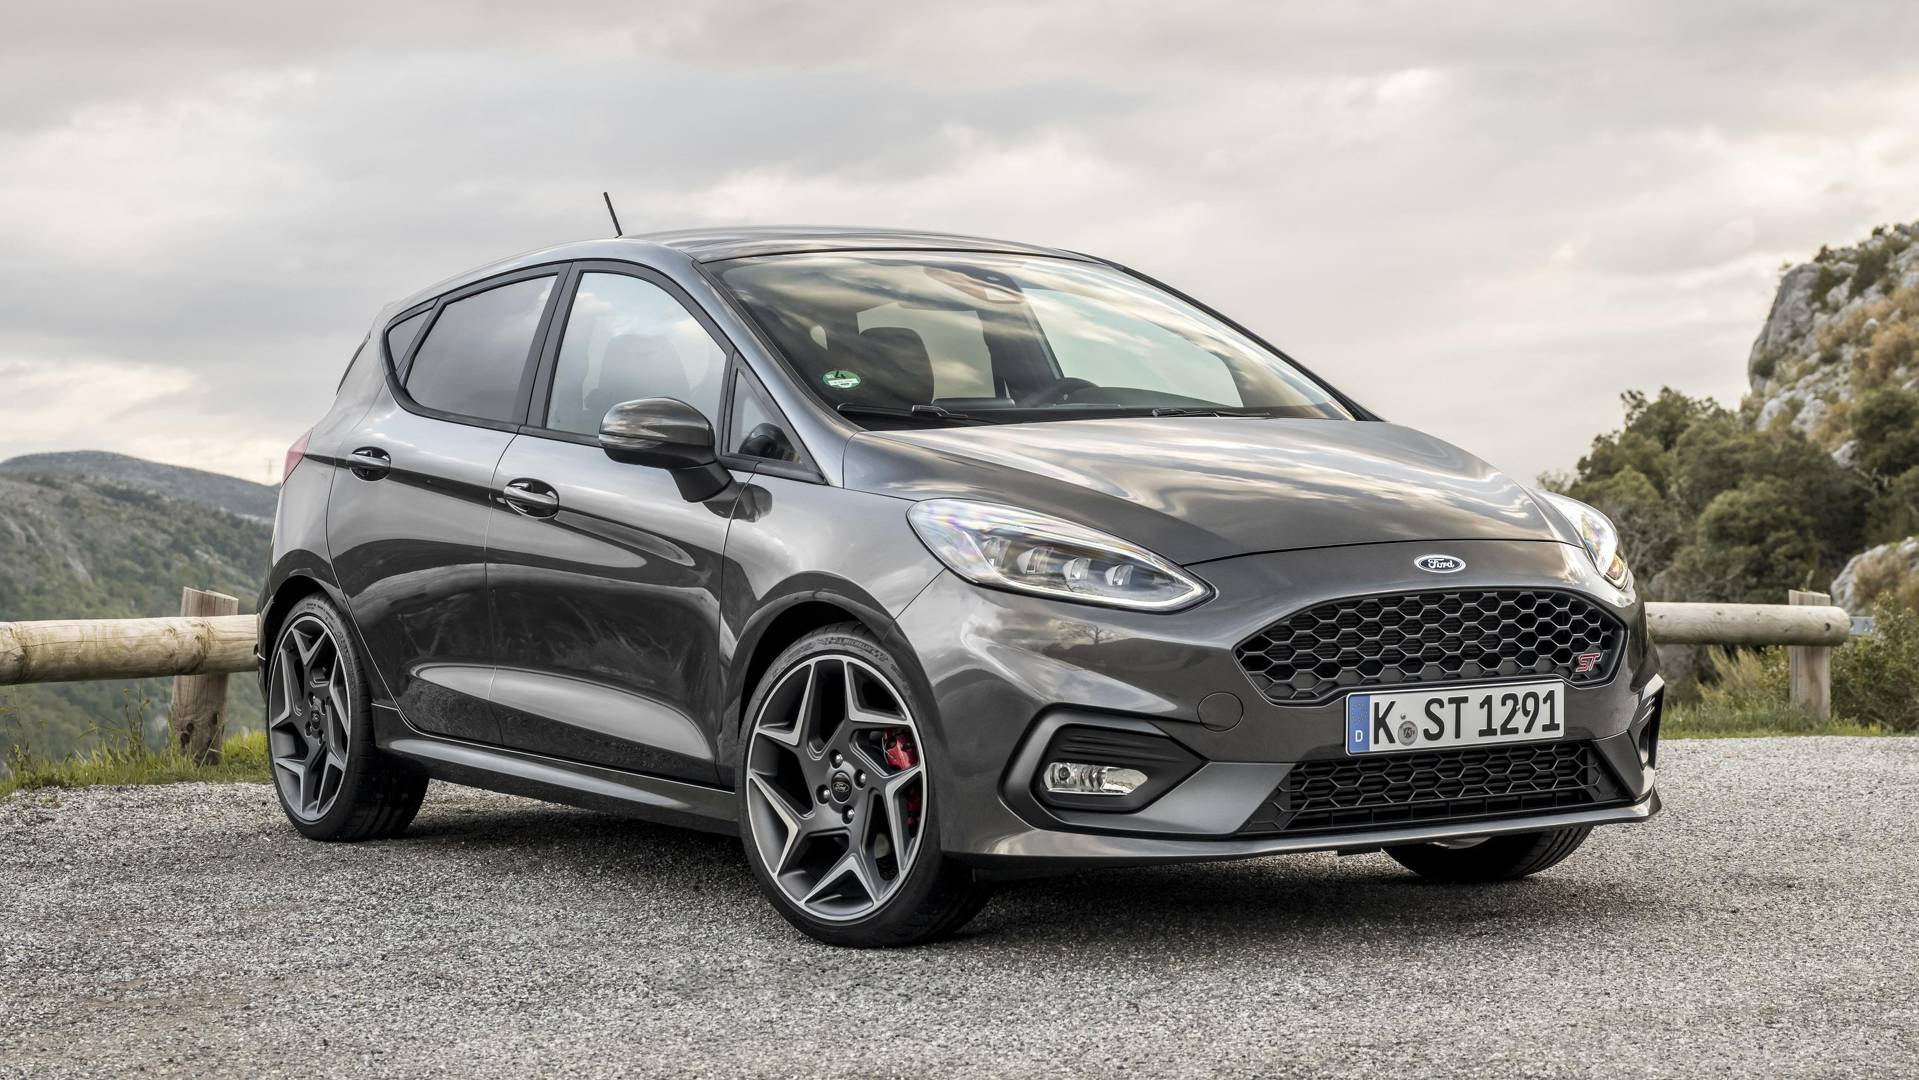 86 All New 2020 Ford Fiesta Concept